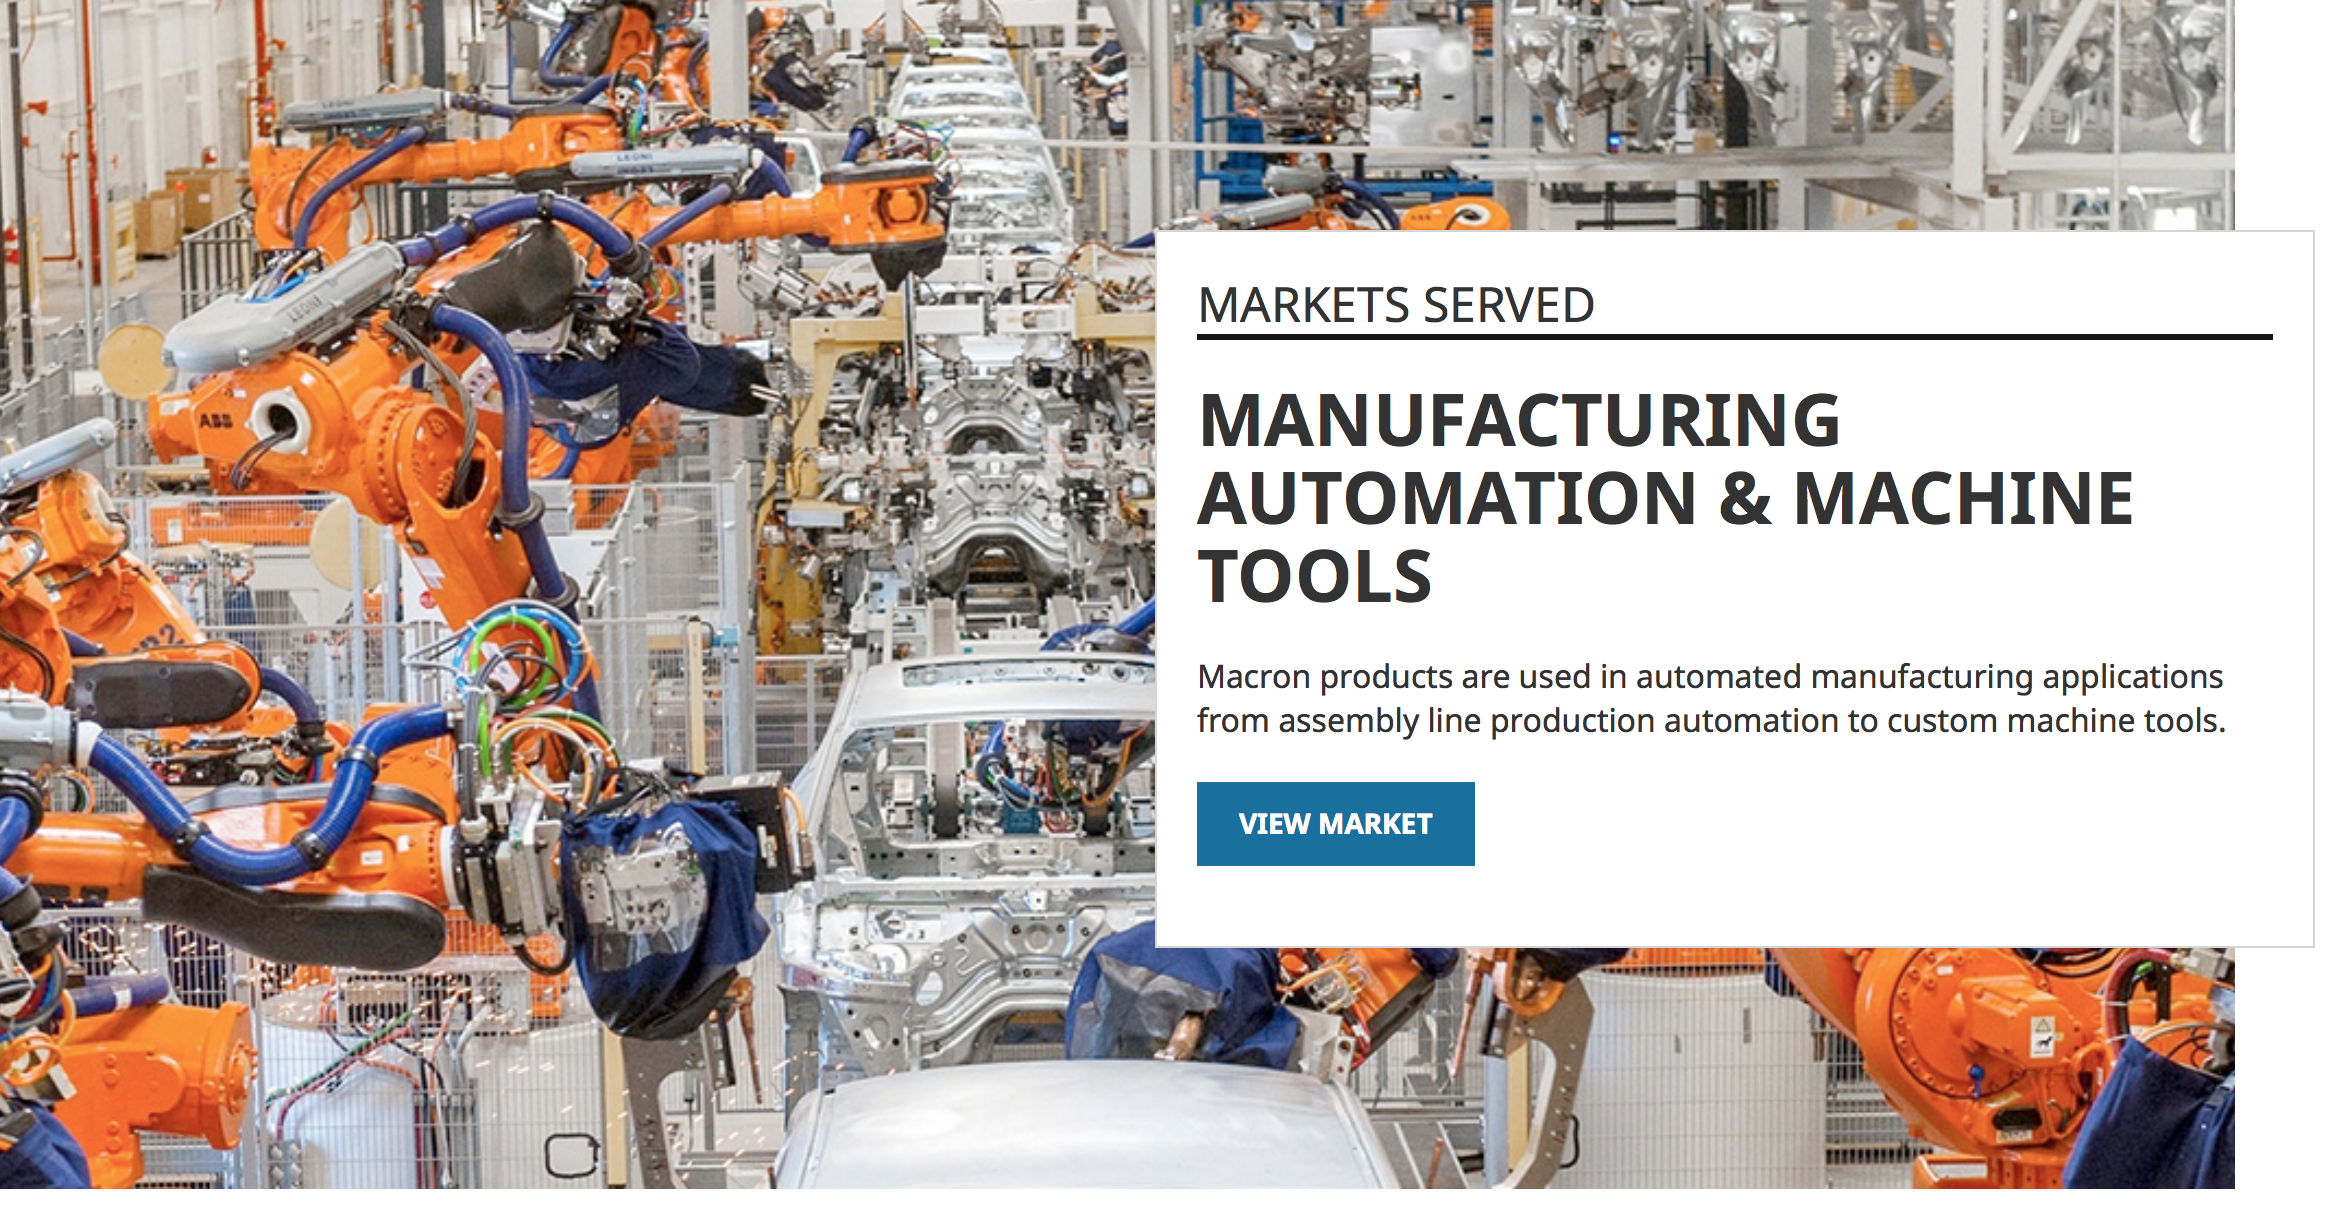 Macron Manufacturing Automation & Machine Tools